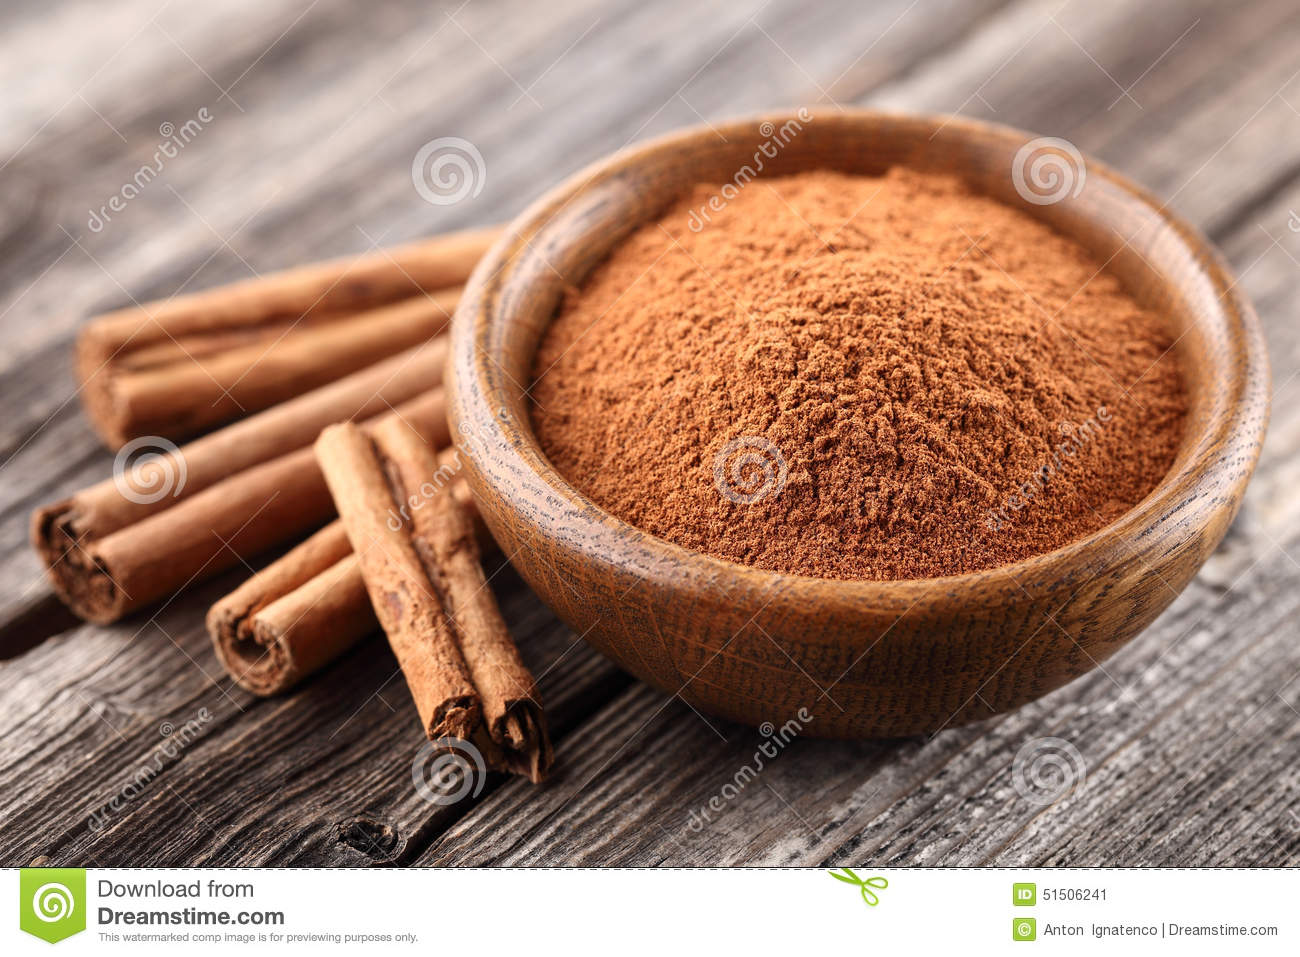 Cinnamon powder with sticks